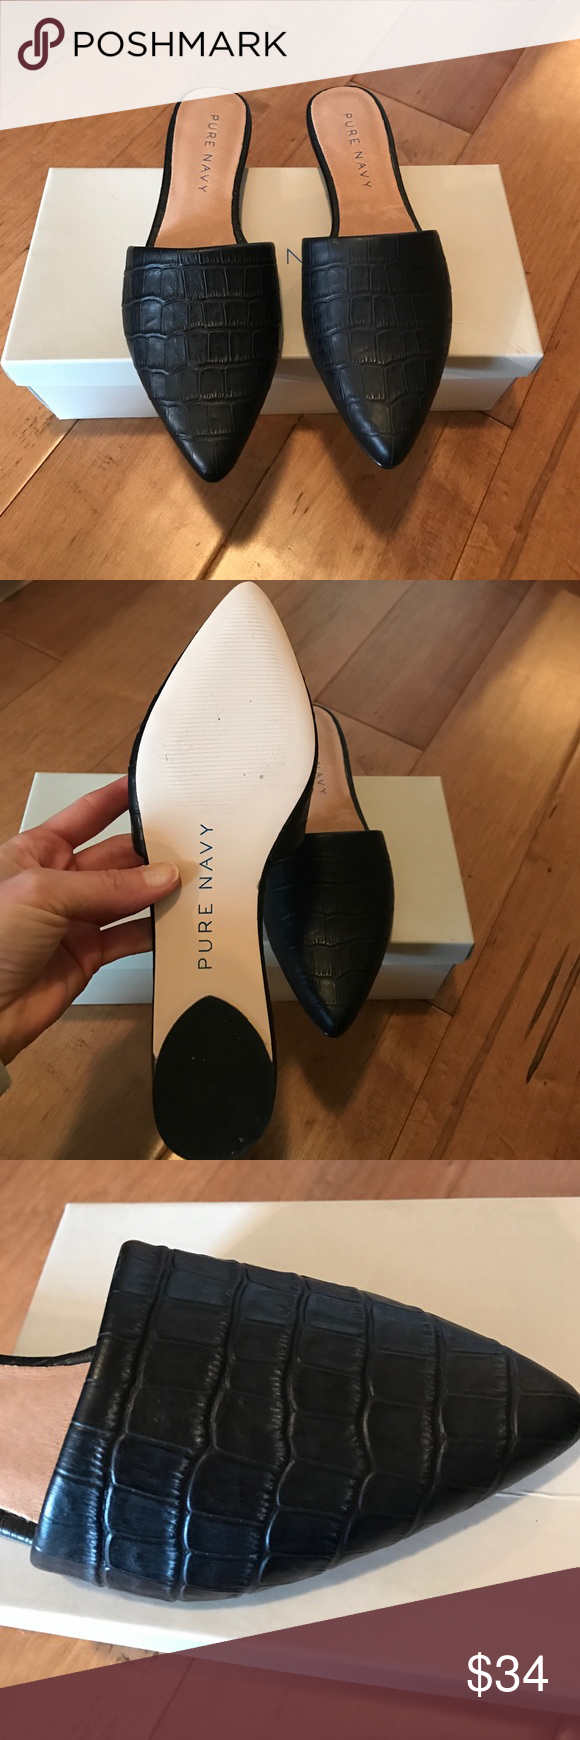 NEW Pure Navy Black Leather Mules Black croc embossed leather mules by Pure Navy from Gilt. New in box! Pure Navy Shoes Mules & Clogs